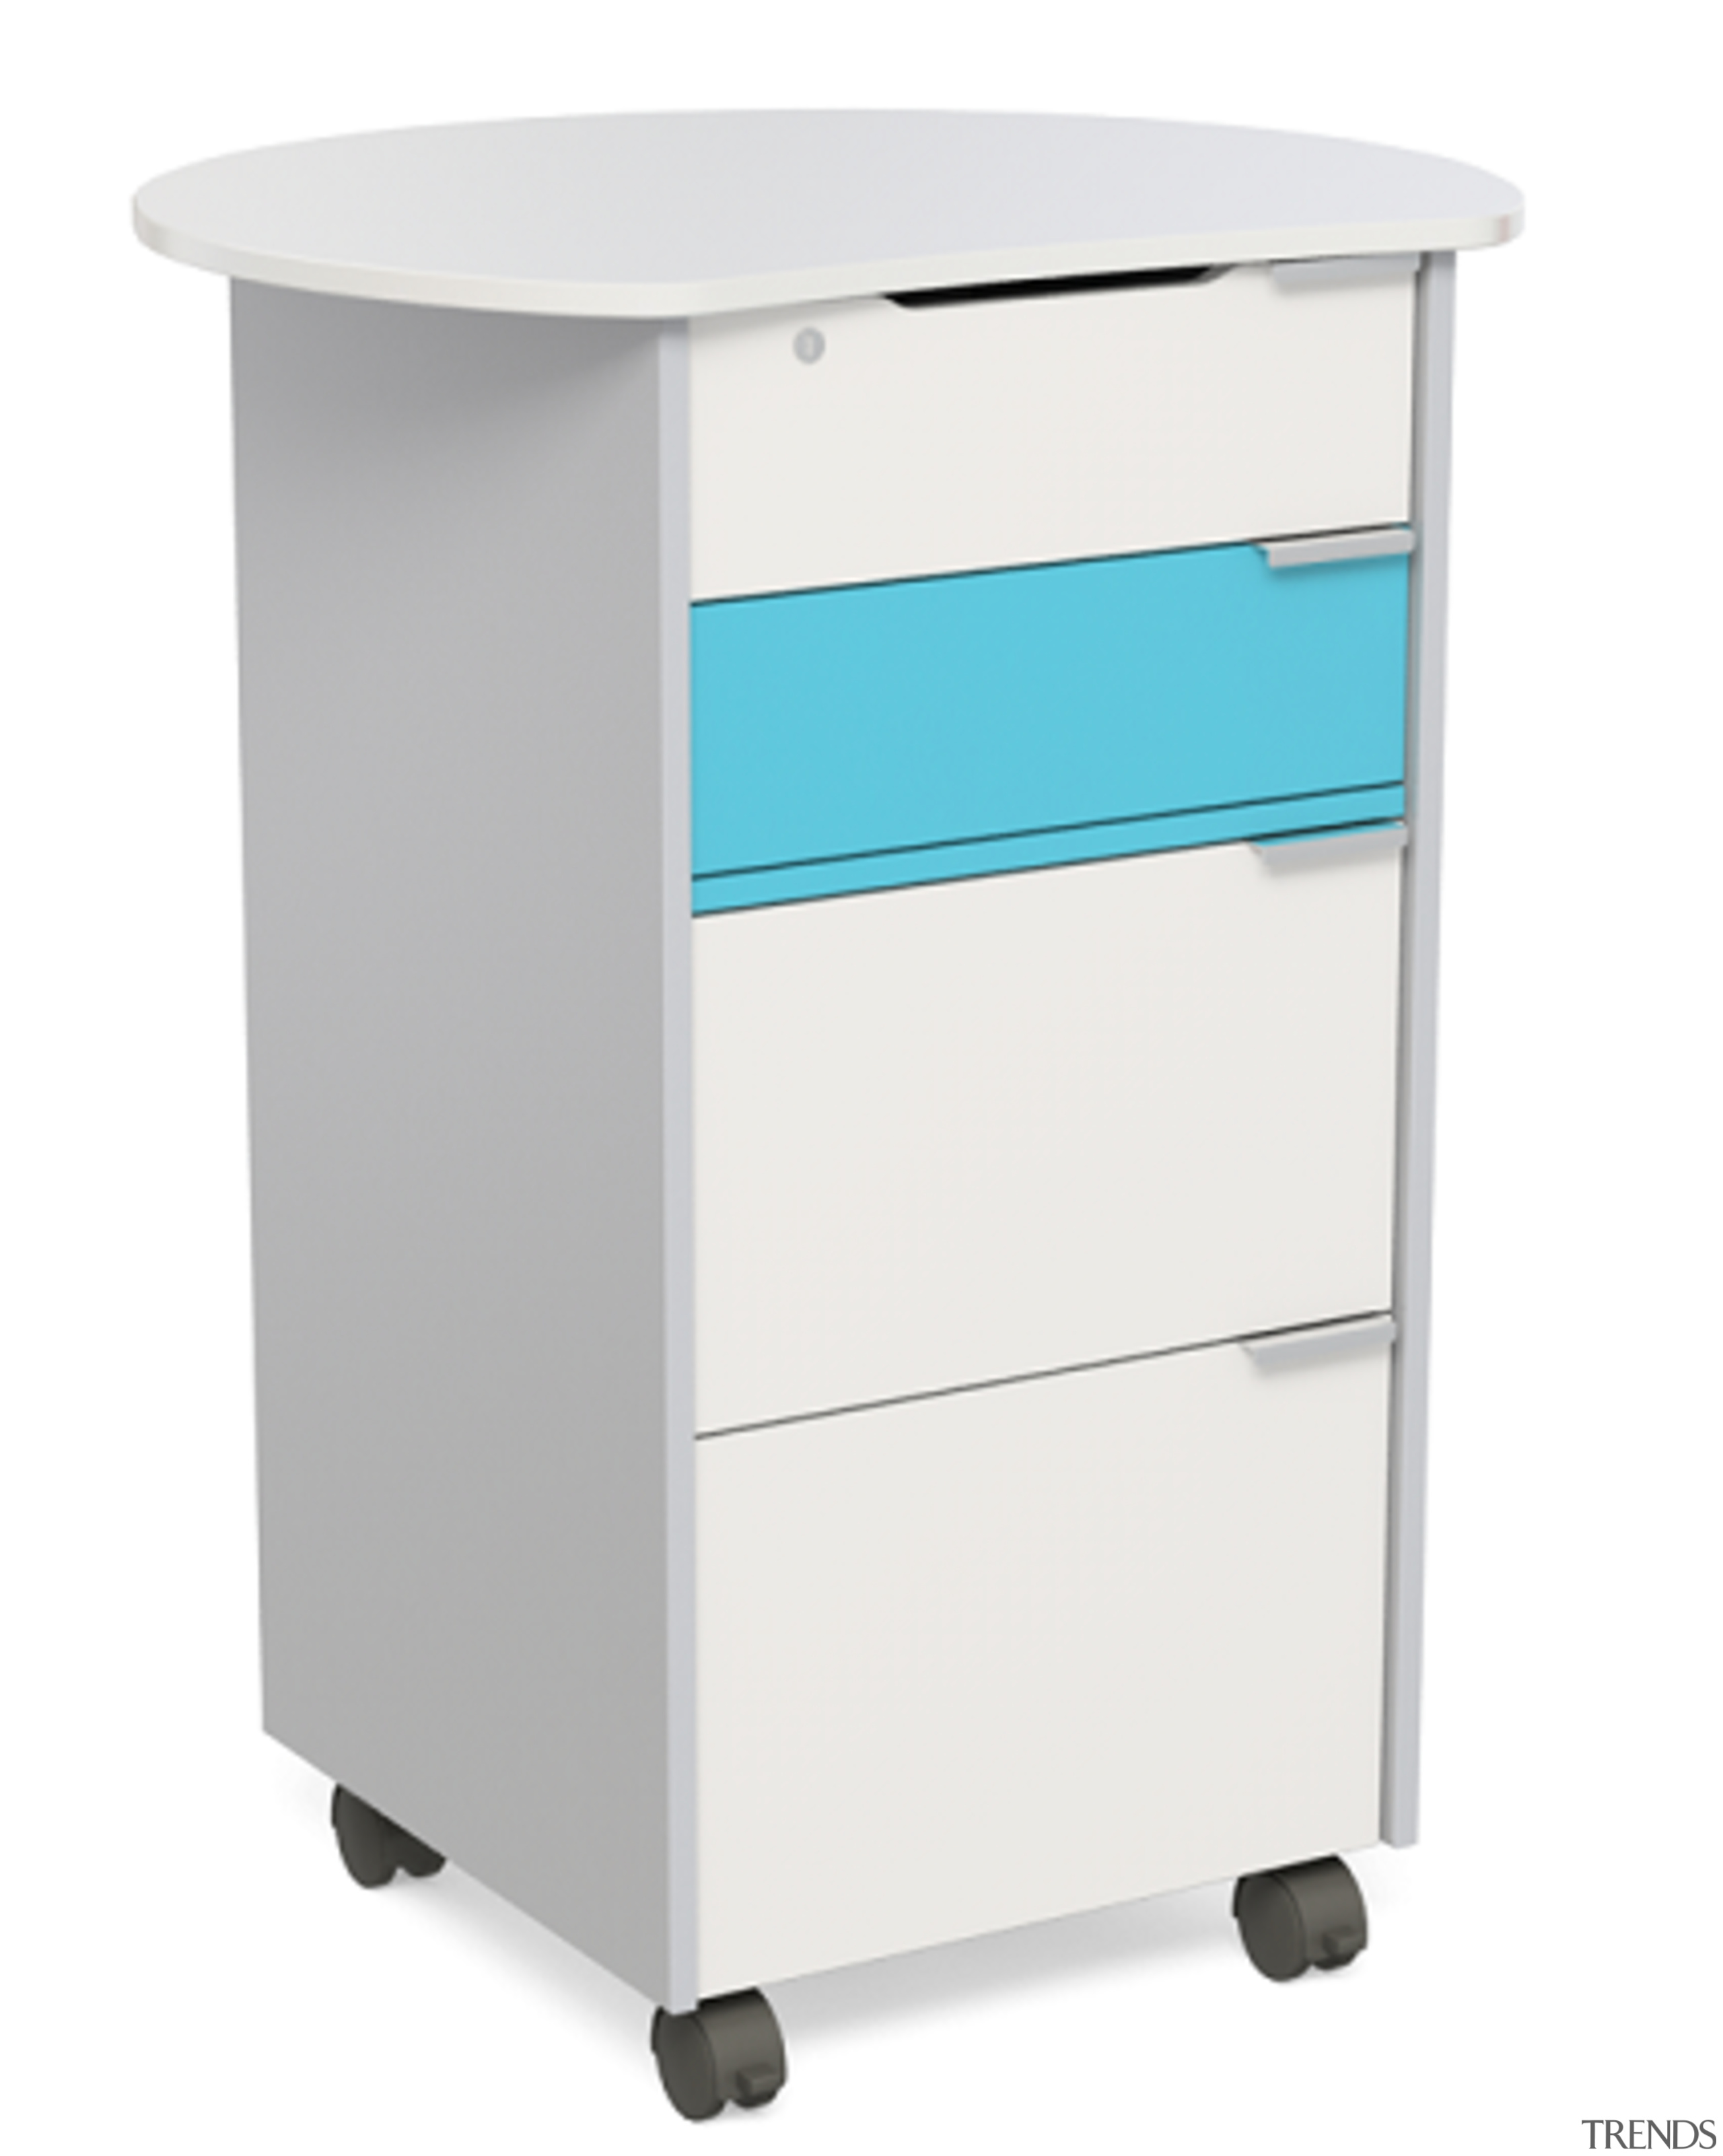 This mobile Teacher's Hub was designed by Furnware angle, chest of drawers, crash cart, drawer, filing cabinet, furniture, product, white